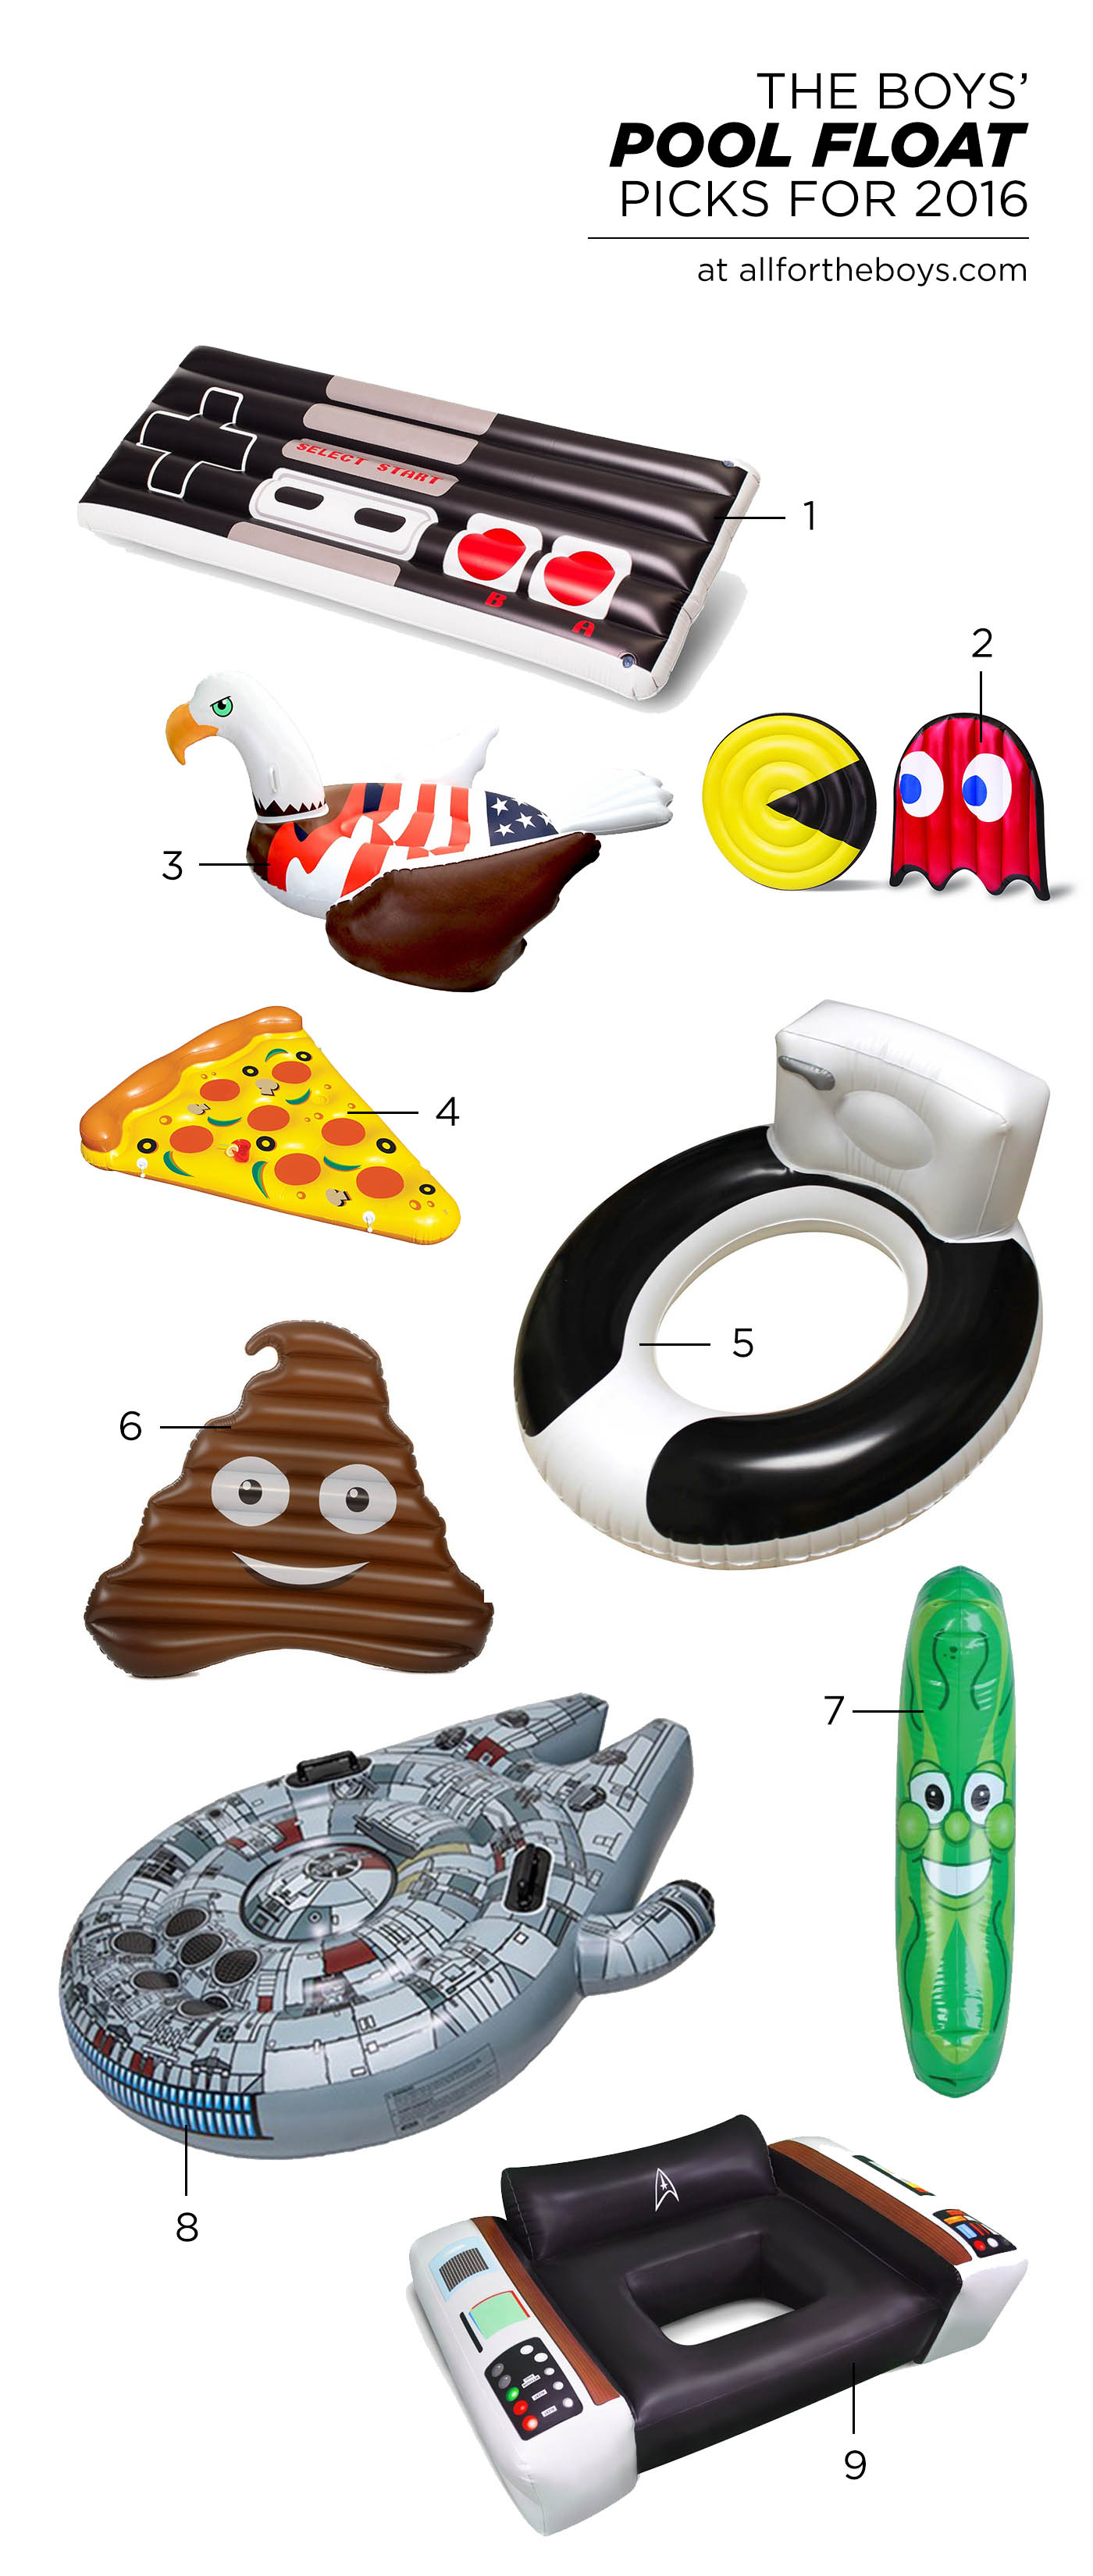 Pool float picks for 2016 chosen by 11 and 13 year old boys